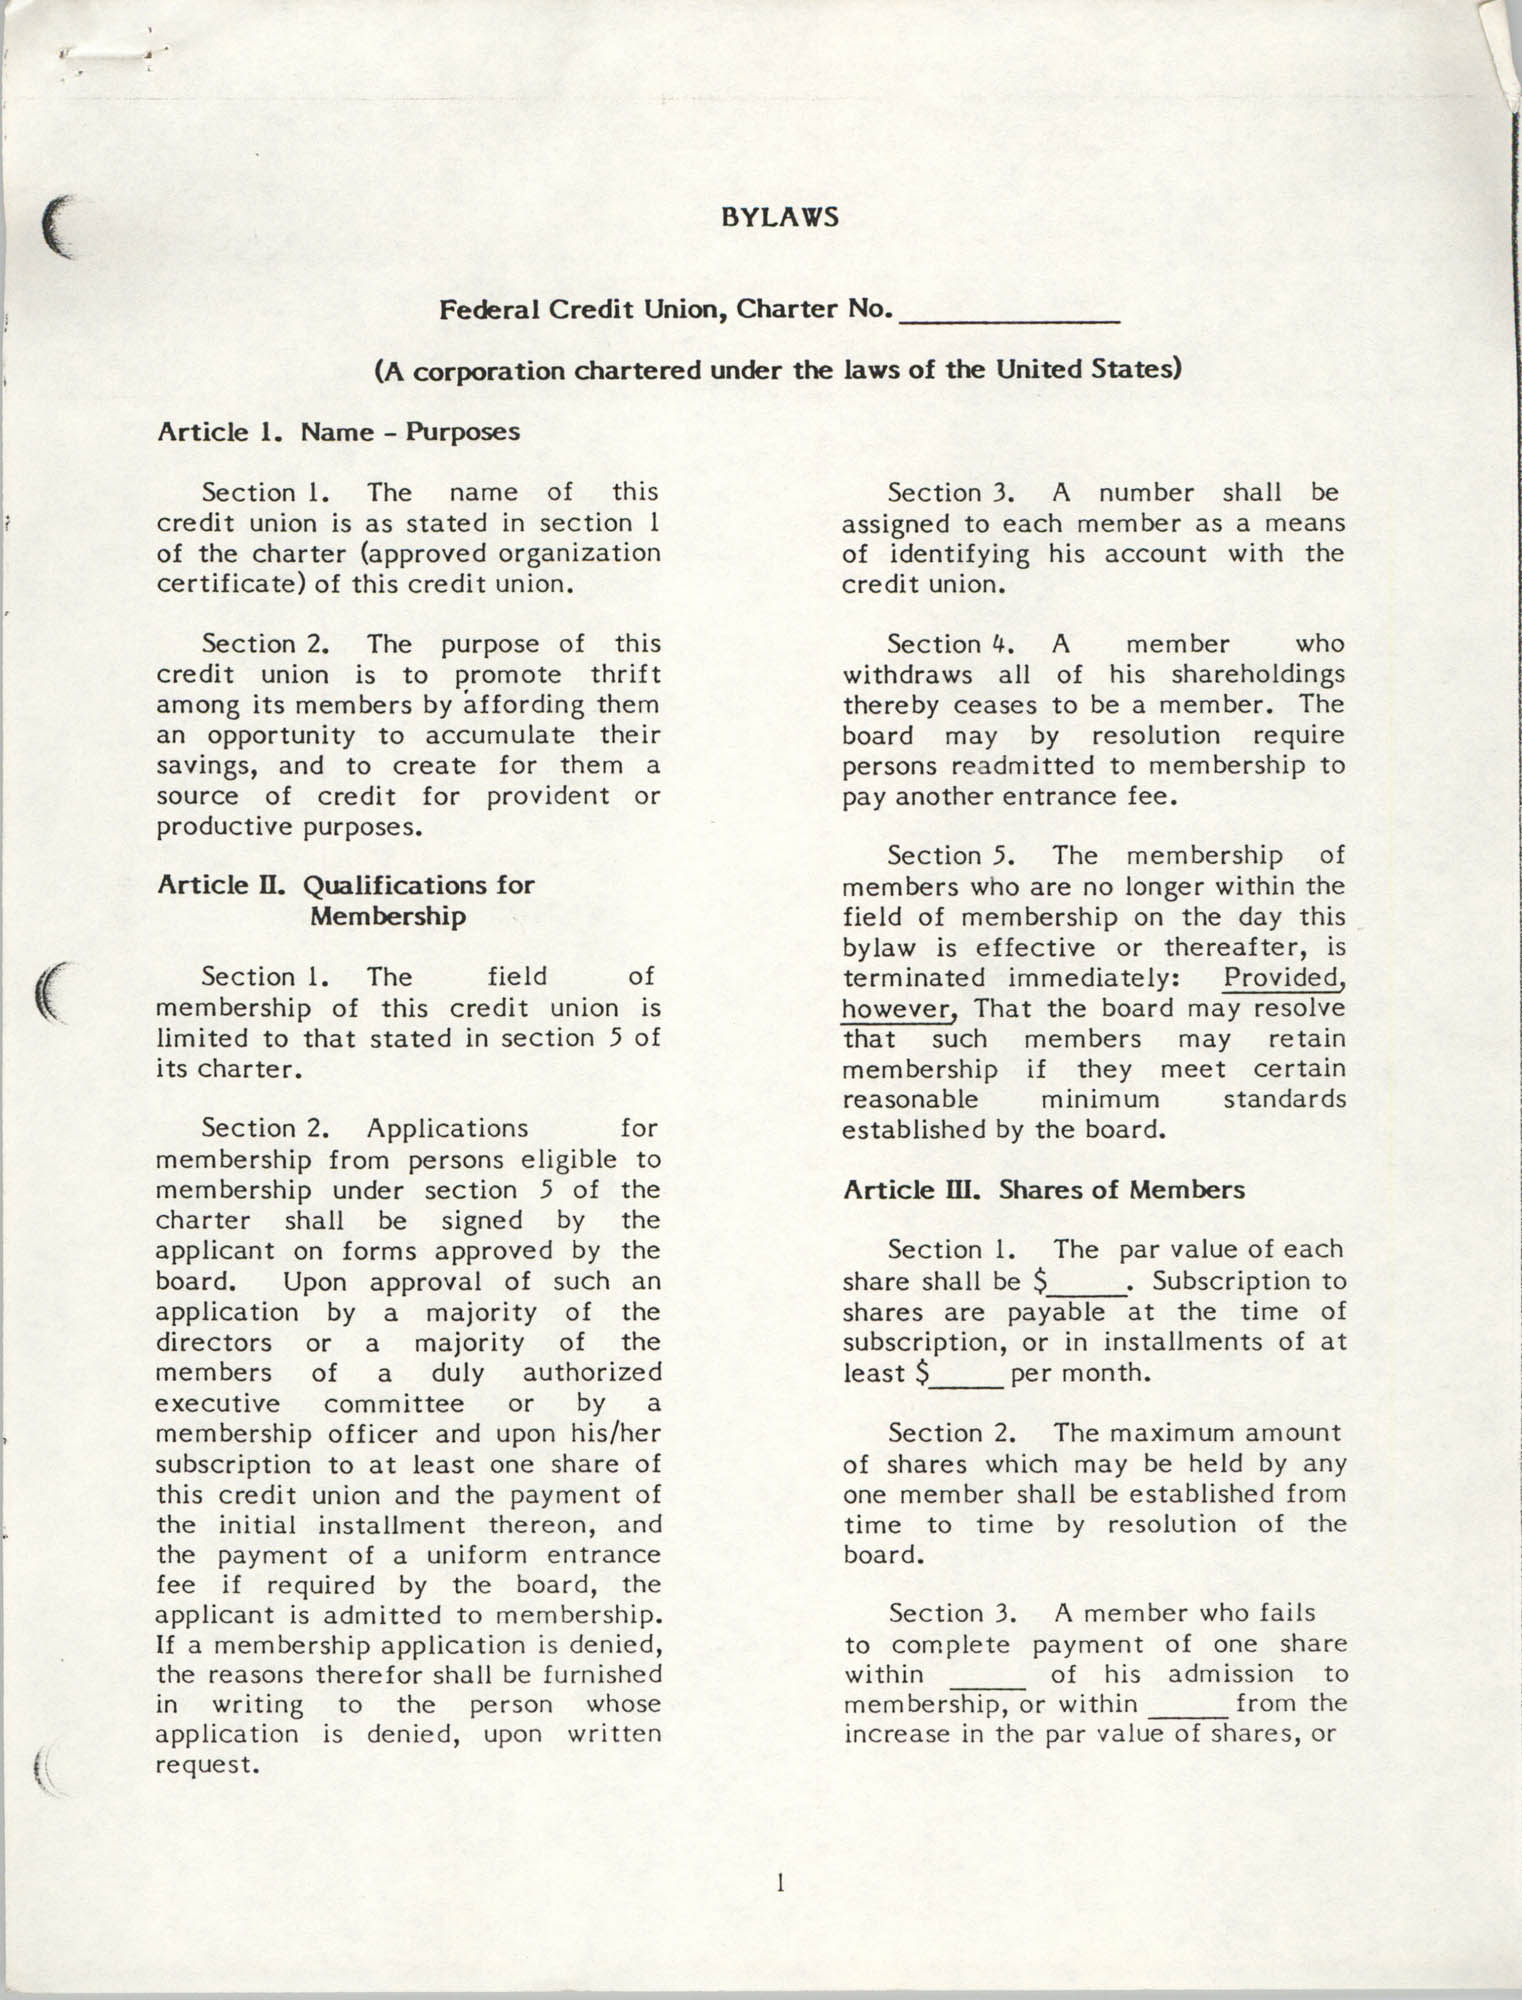 National Credit Union Administration, Federal Credit Union Bylaws, May 1986, Page 1